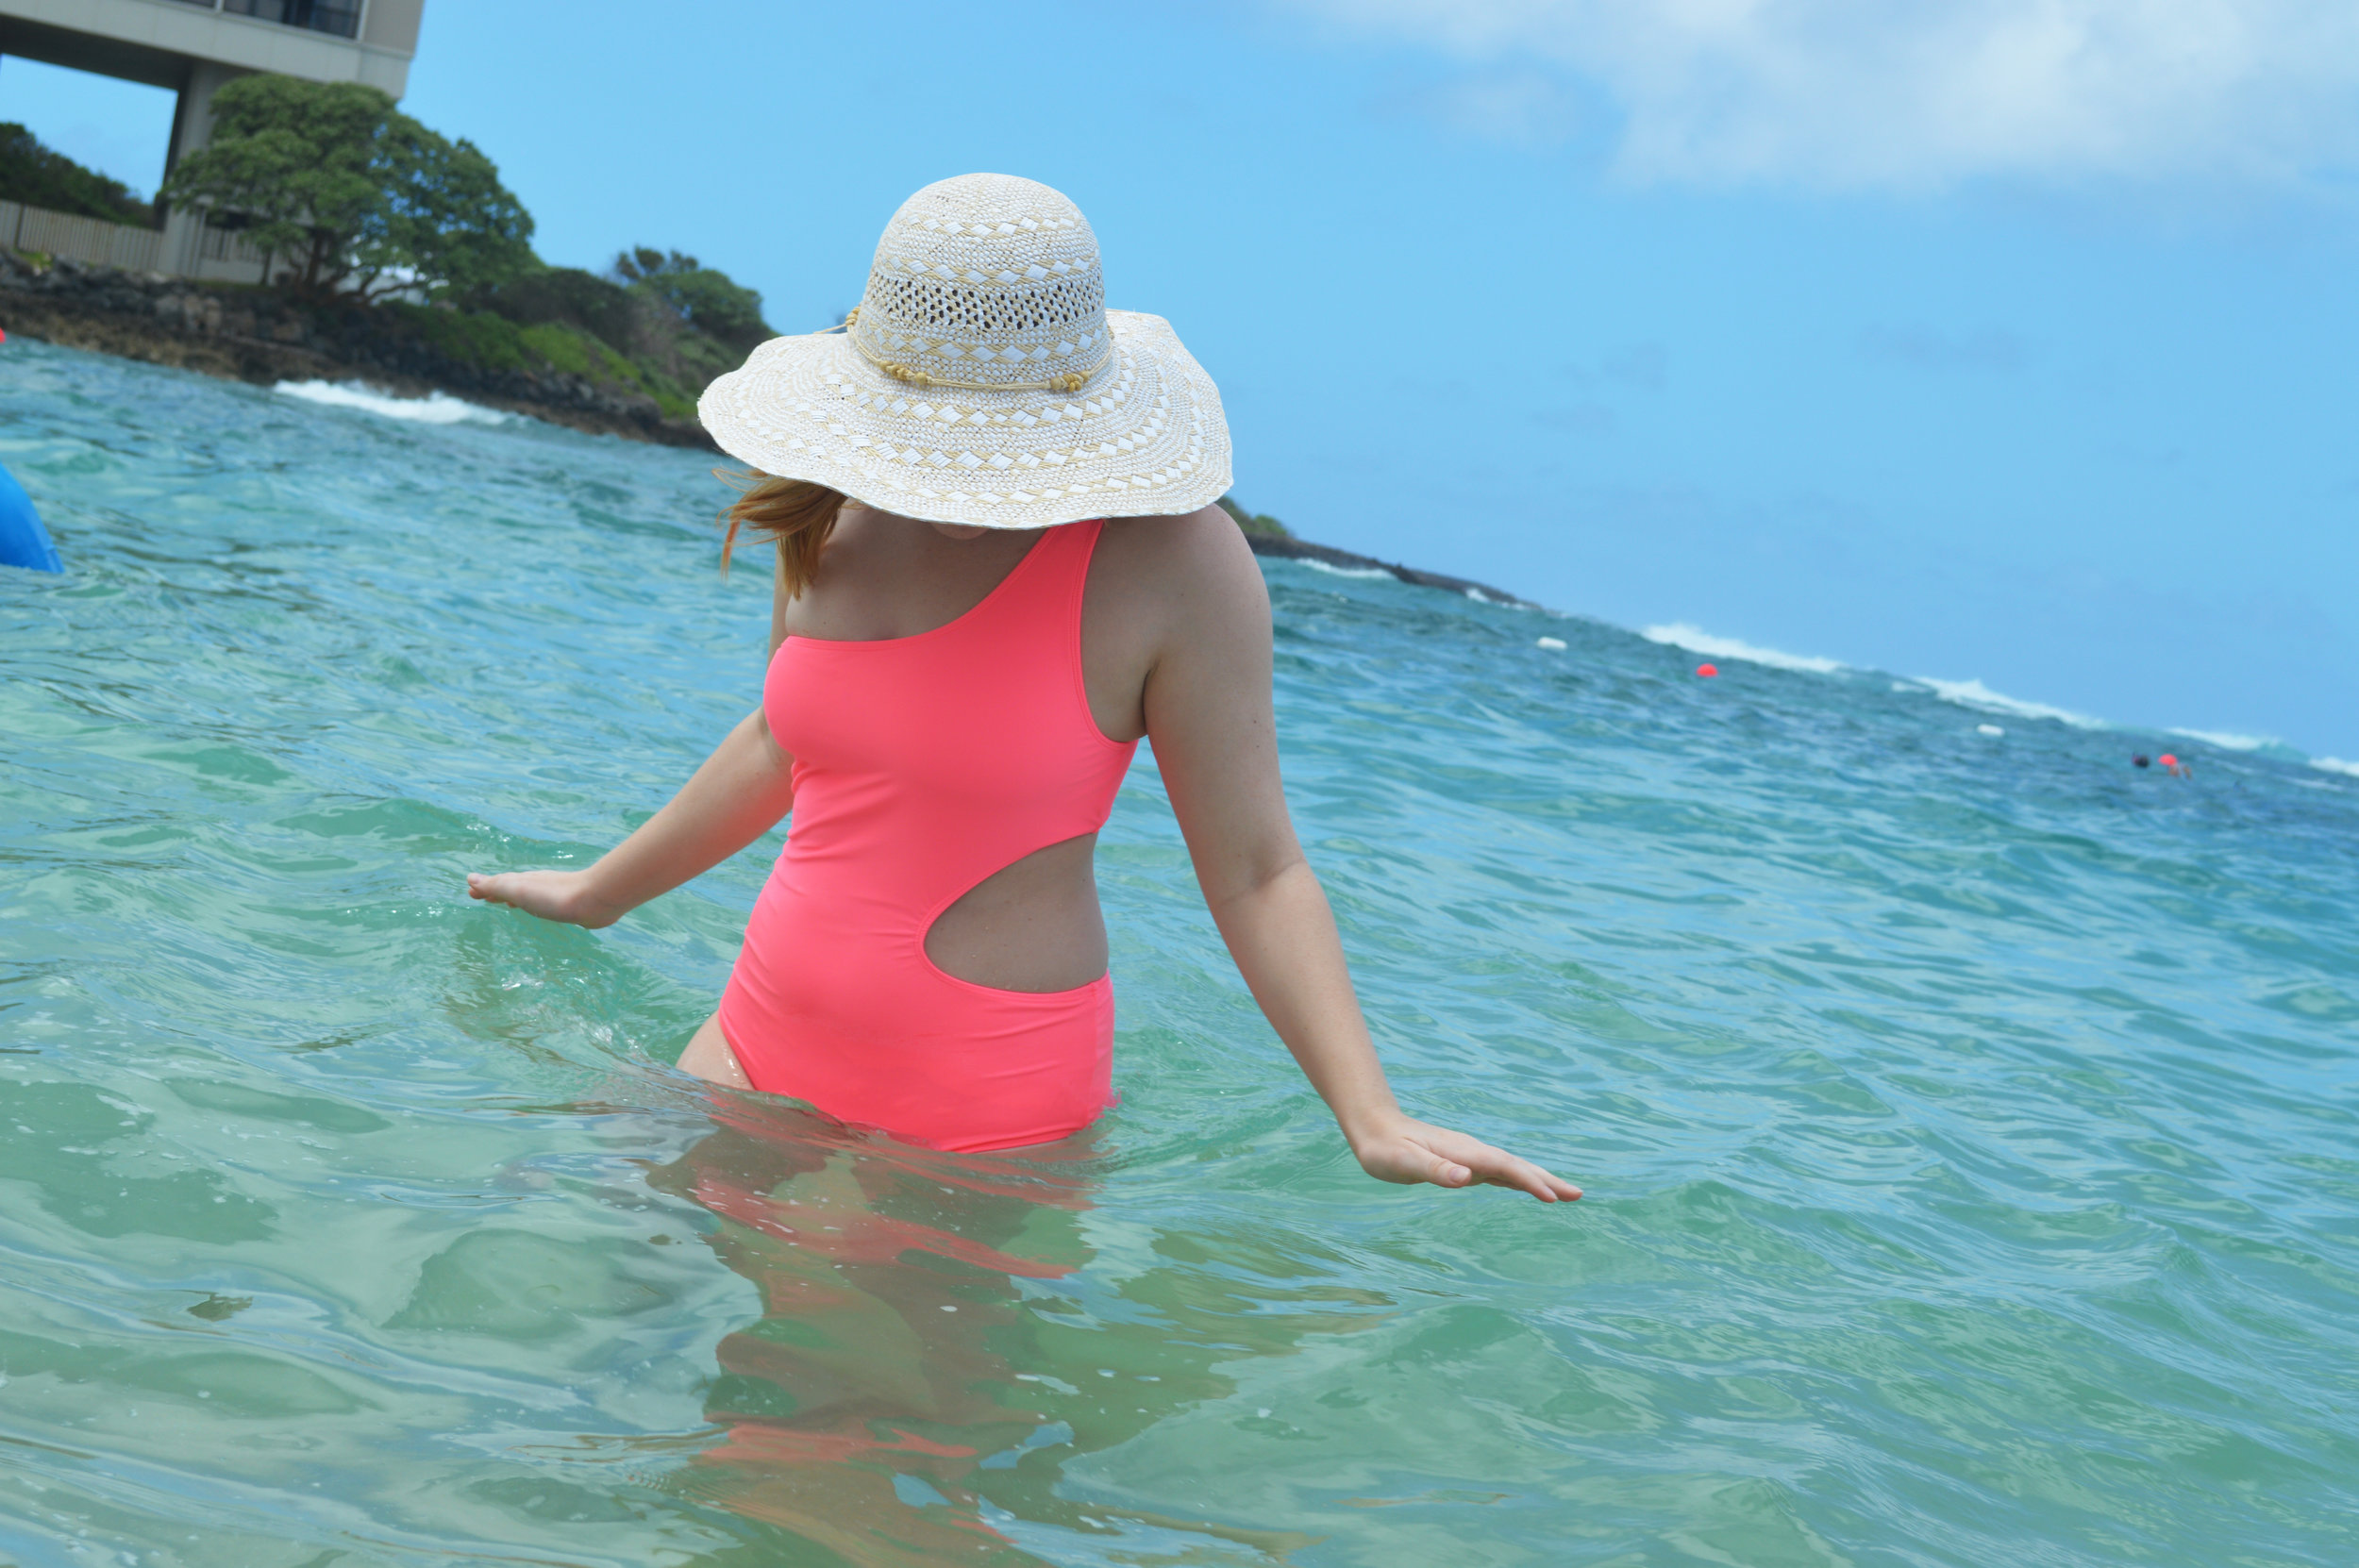 Maggie a la Mode - The Best One-Piece Swimsuits